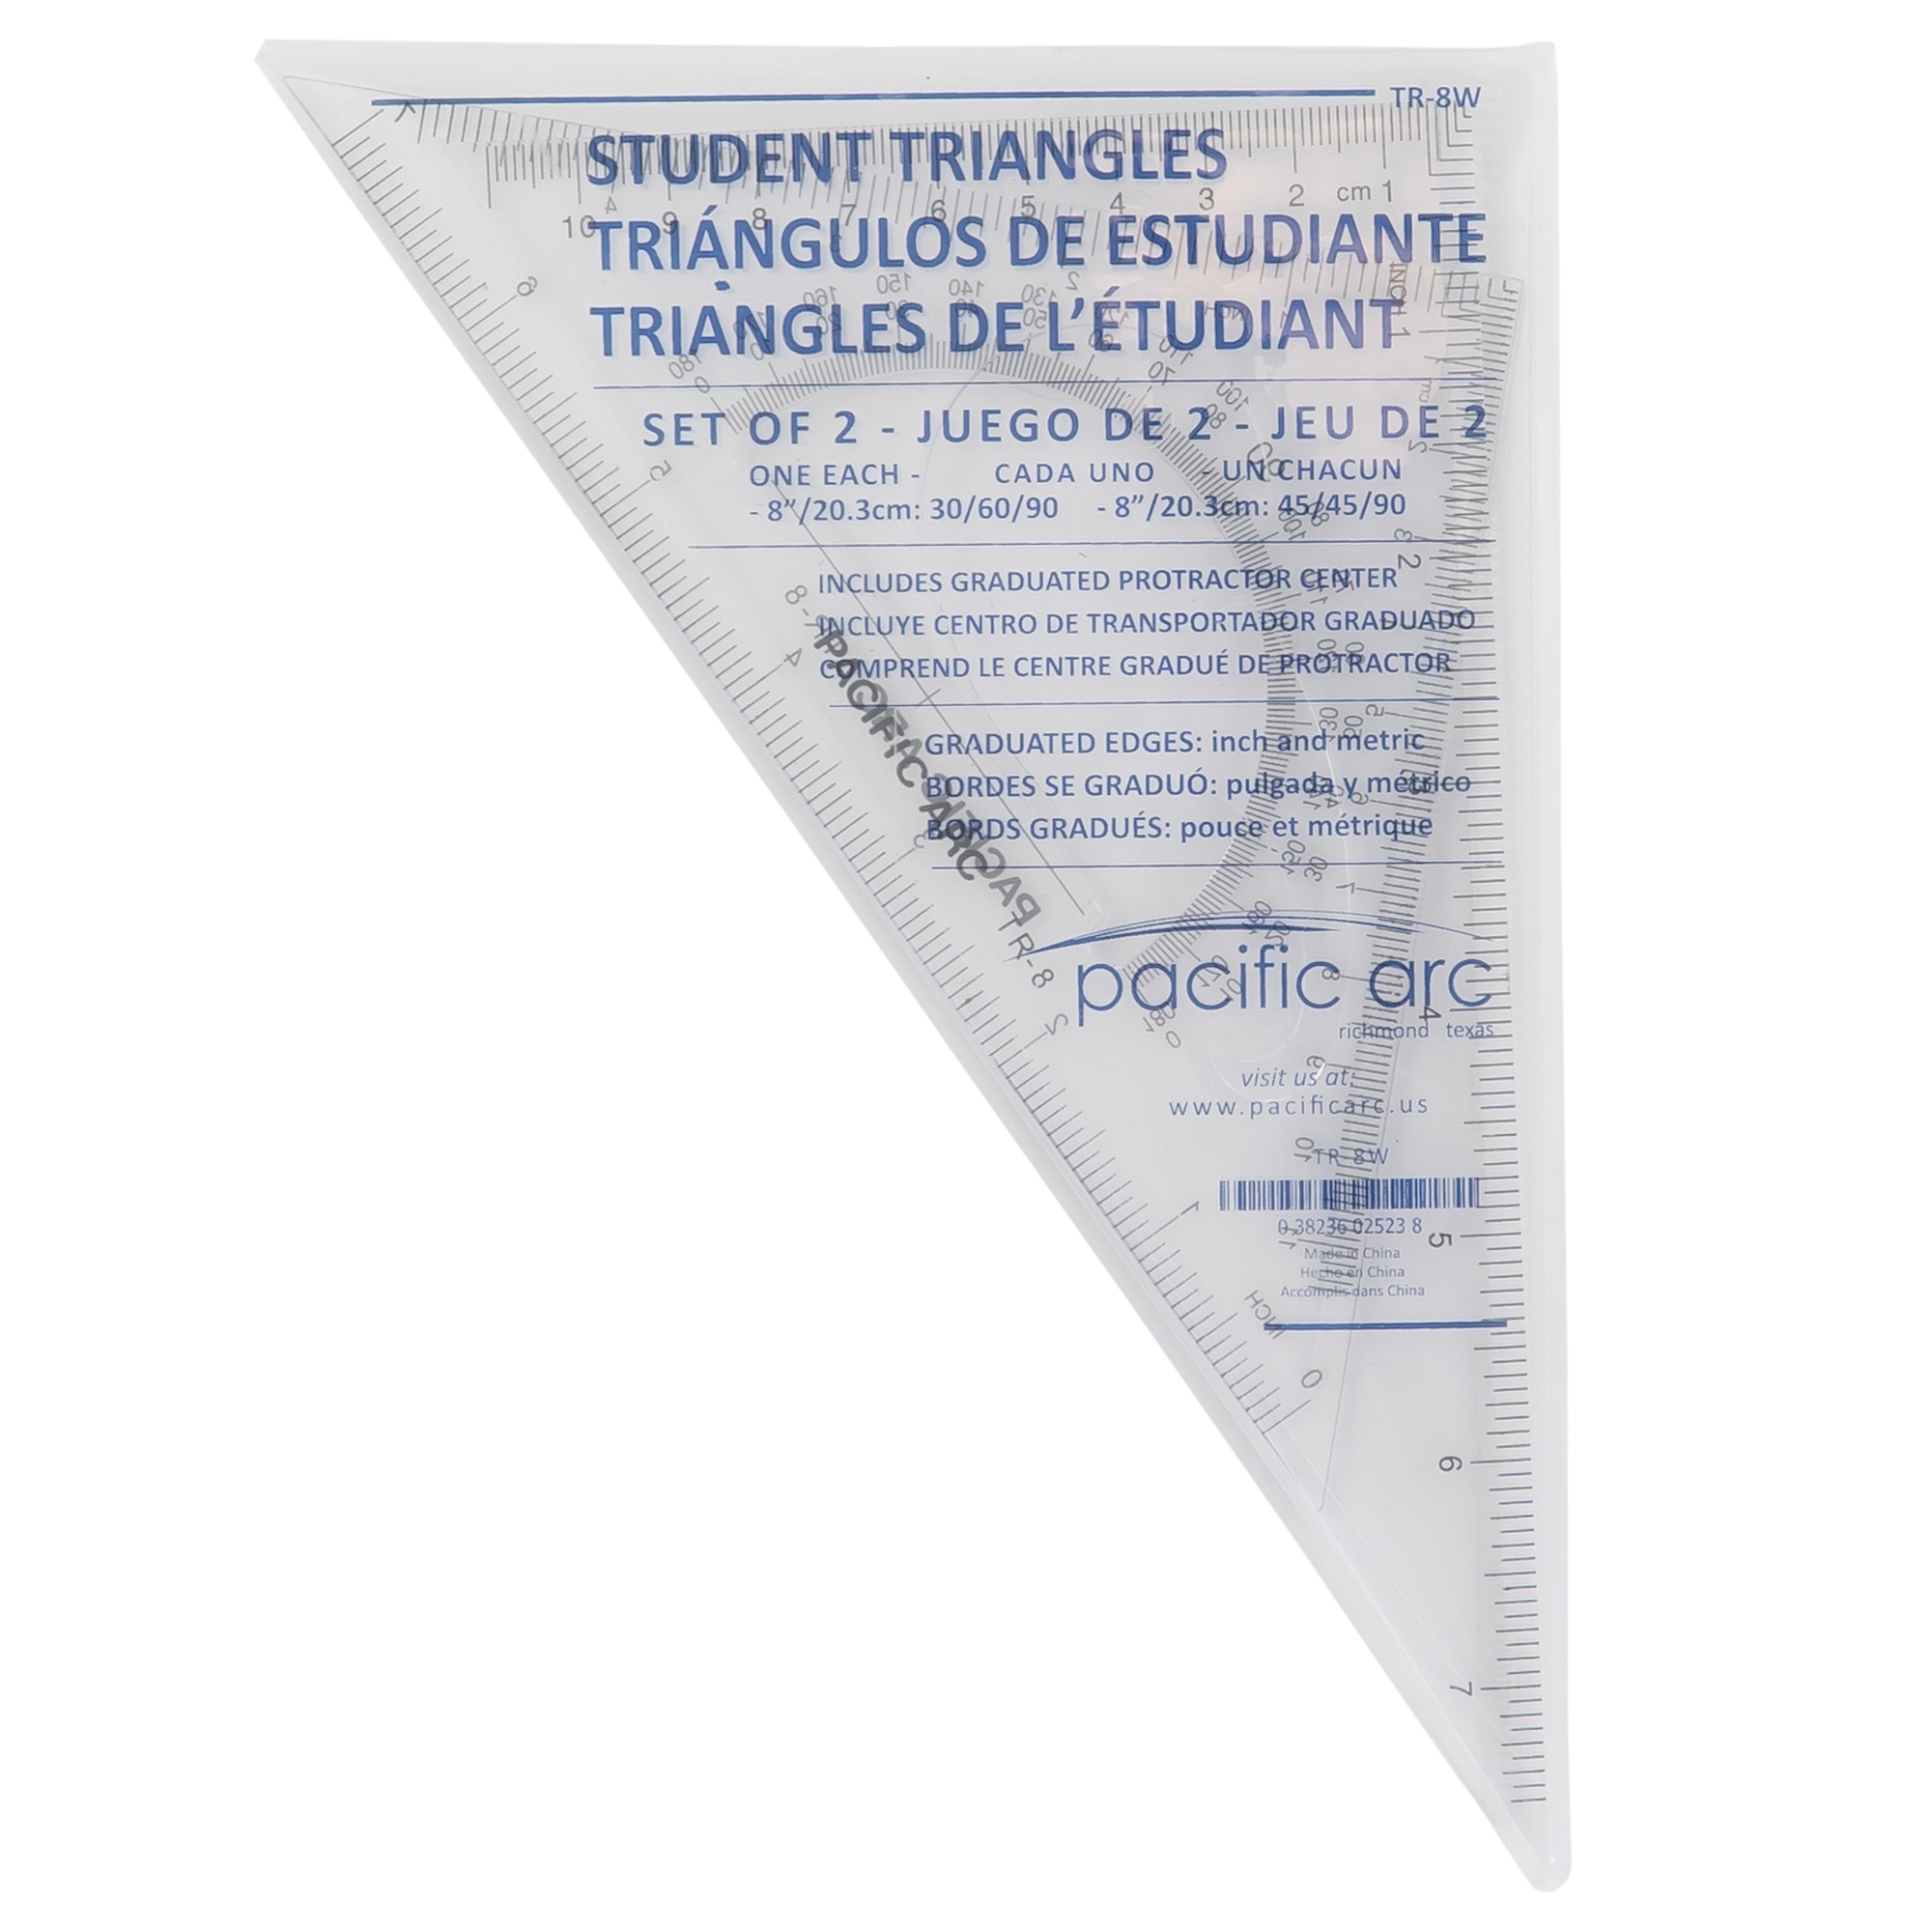 scholastic drafting triangle set with protractor and french curve design in the triangle by pacific arc